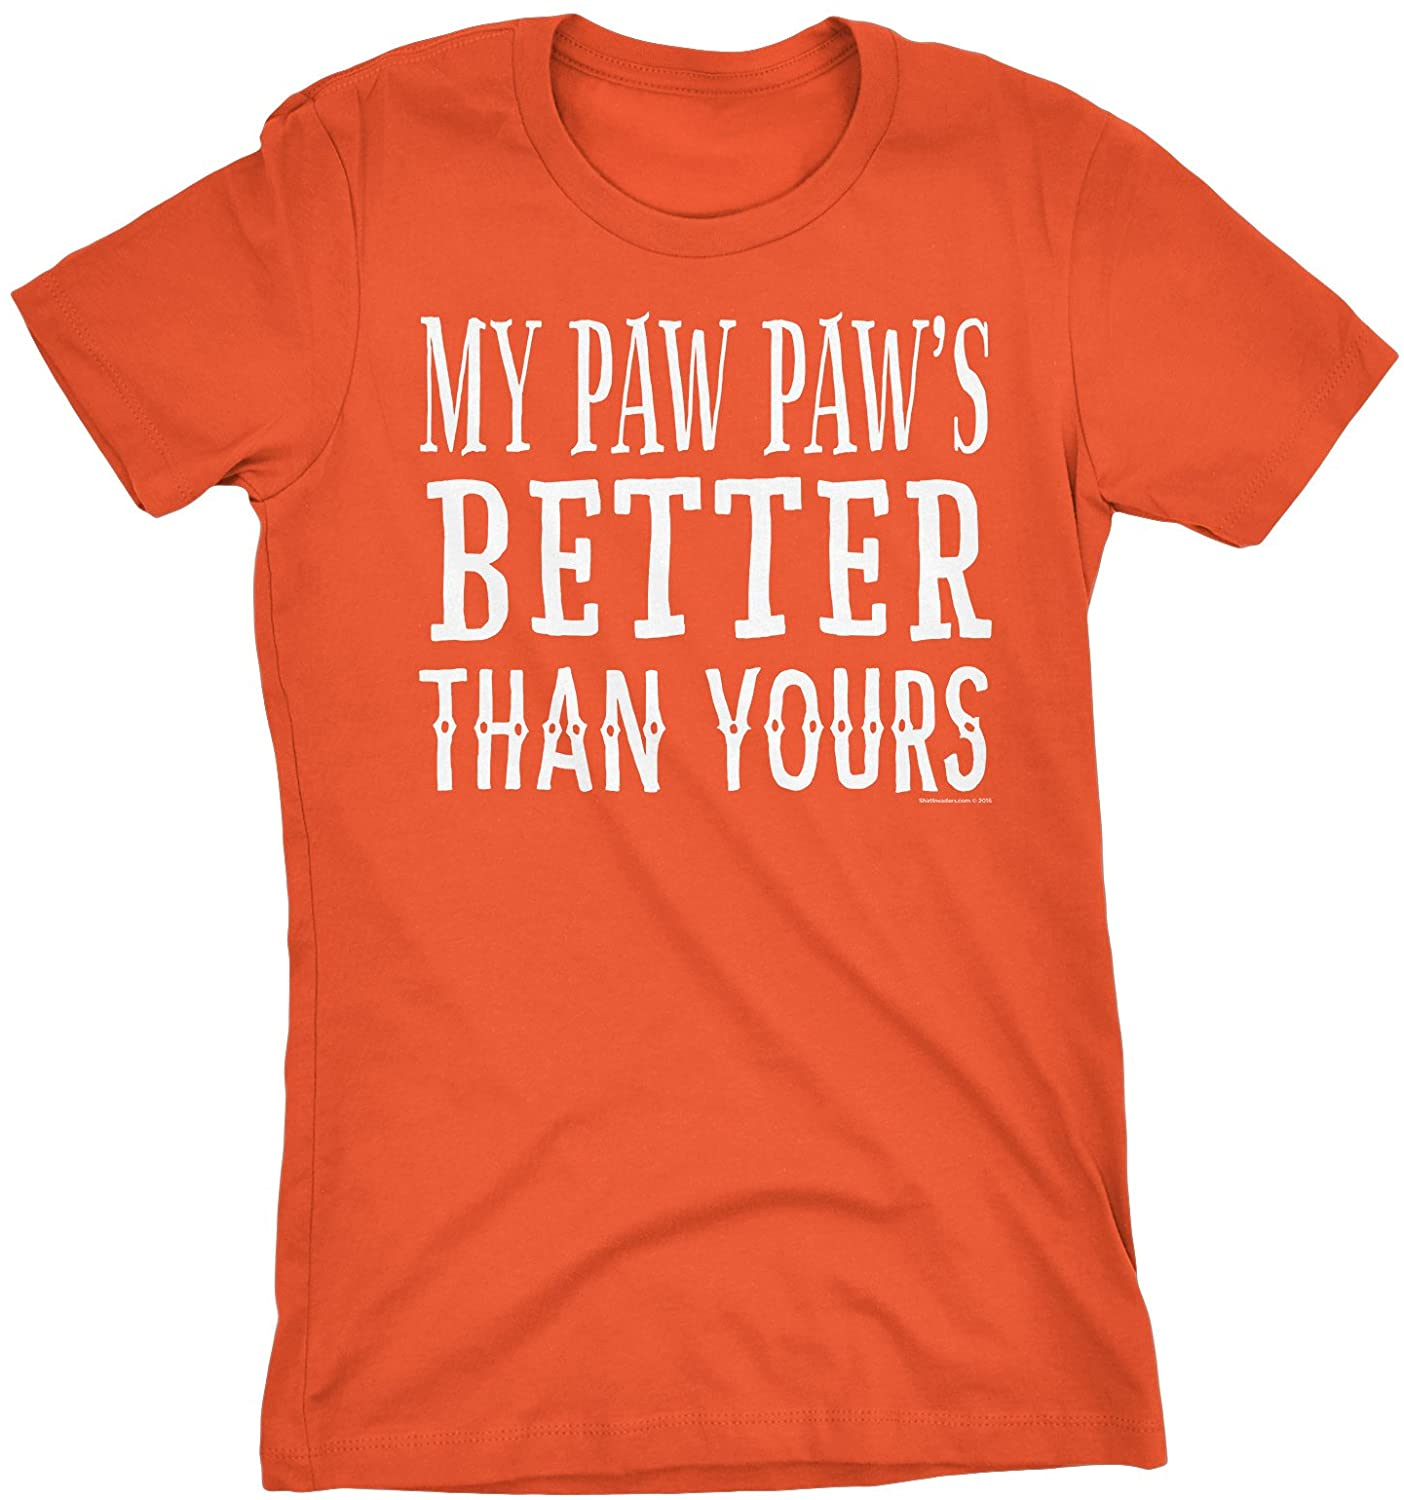 My Paw Paw's Better Than Yours - Funny Womens T-Shirt